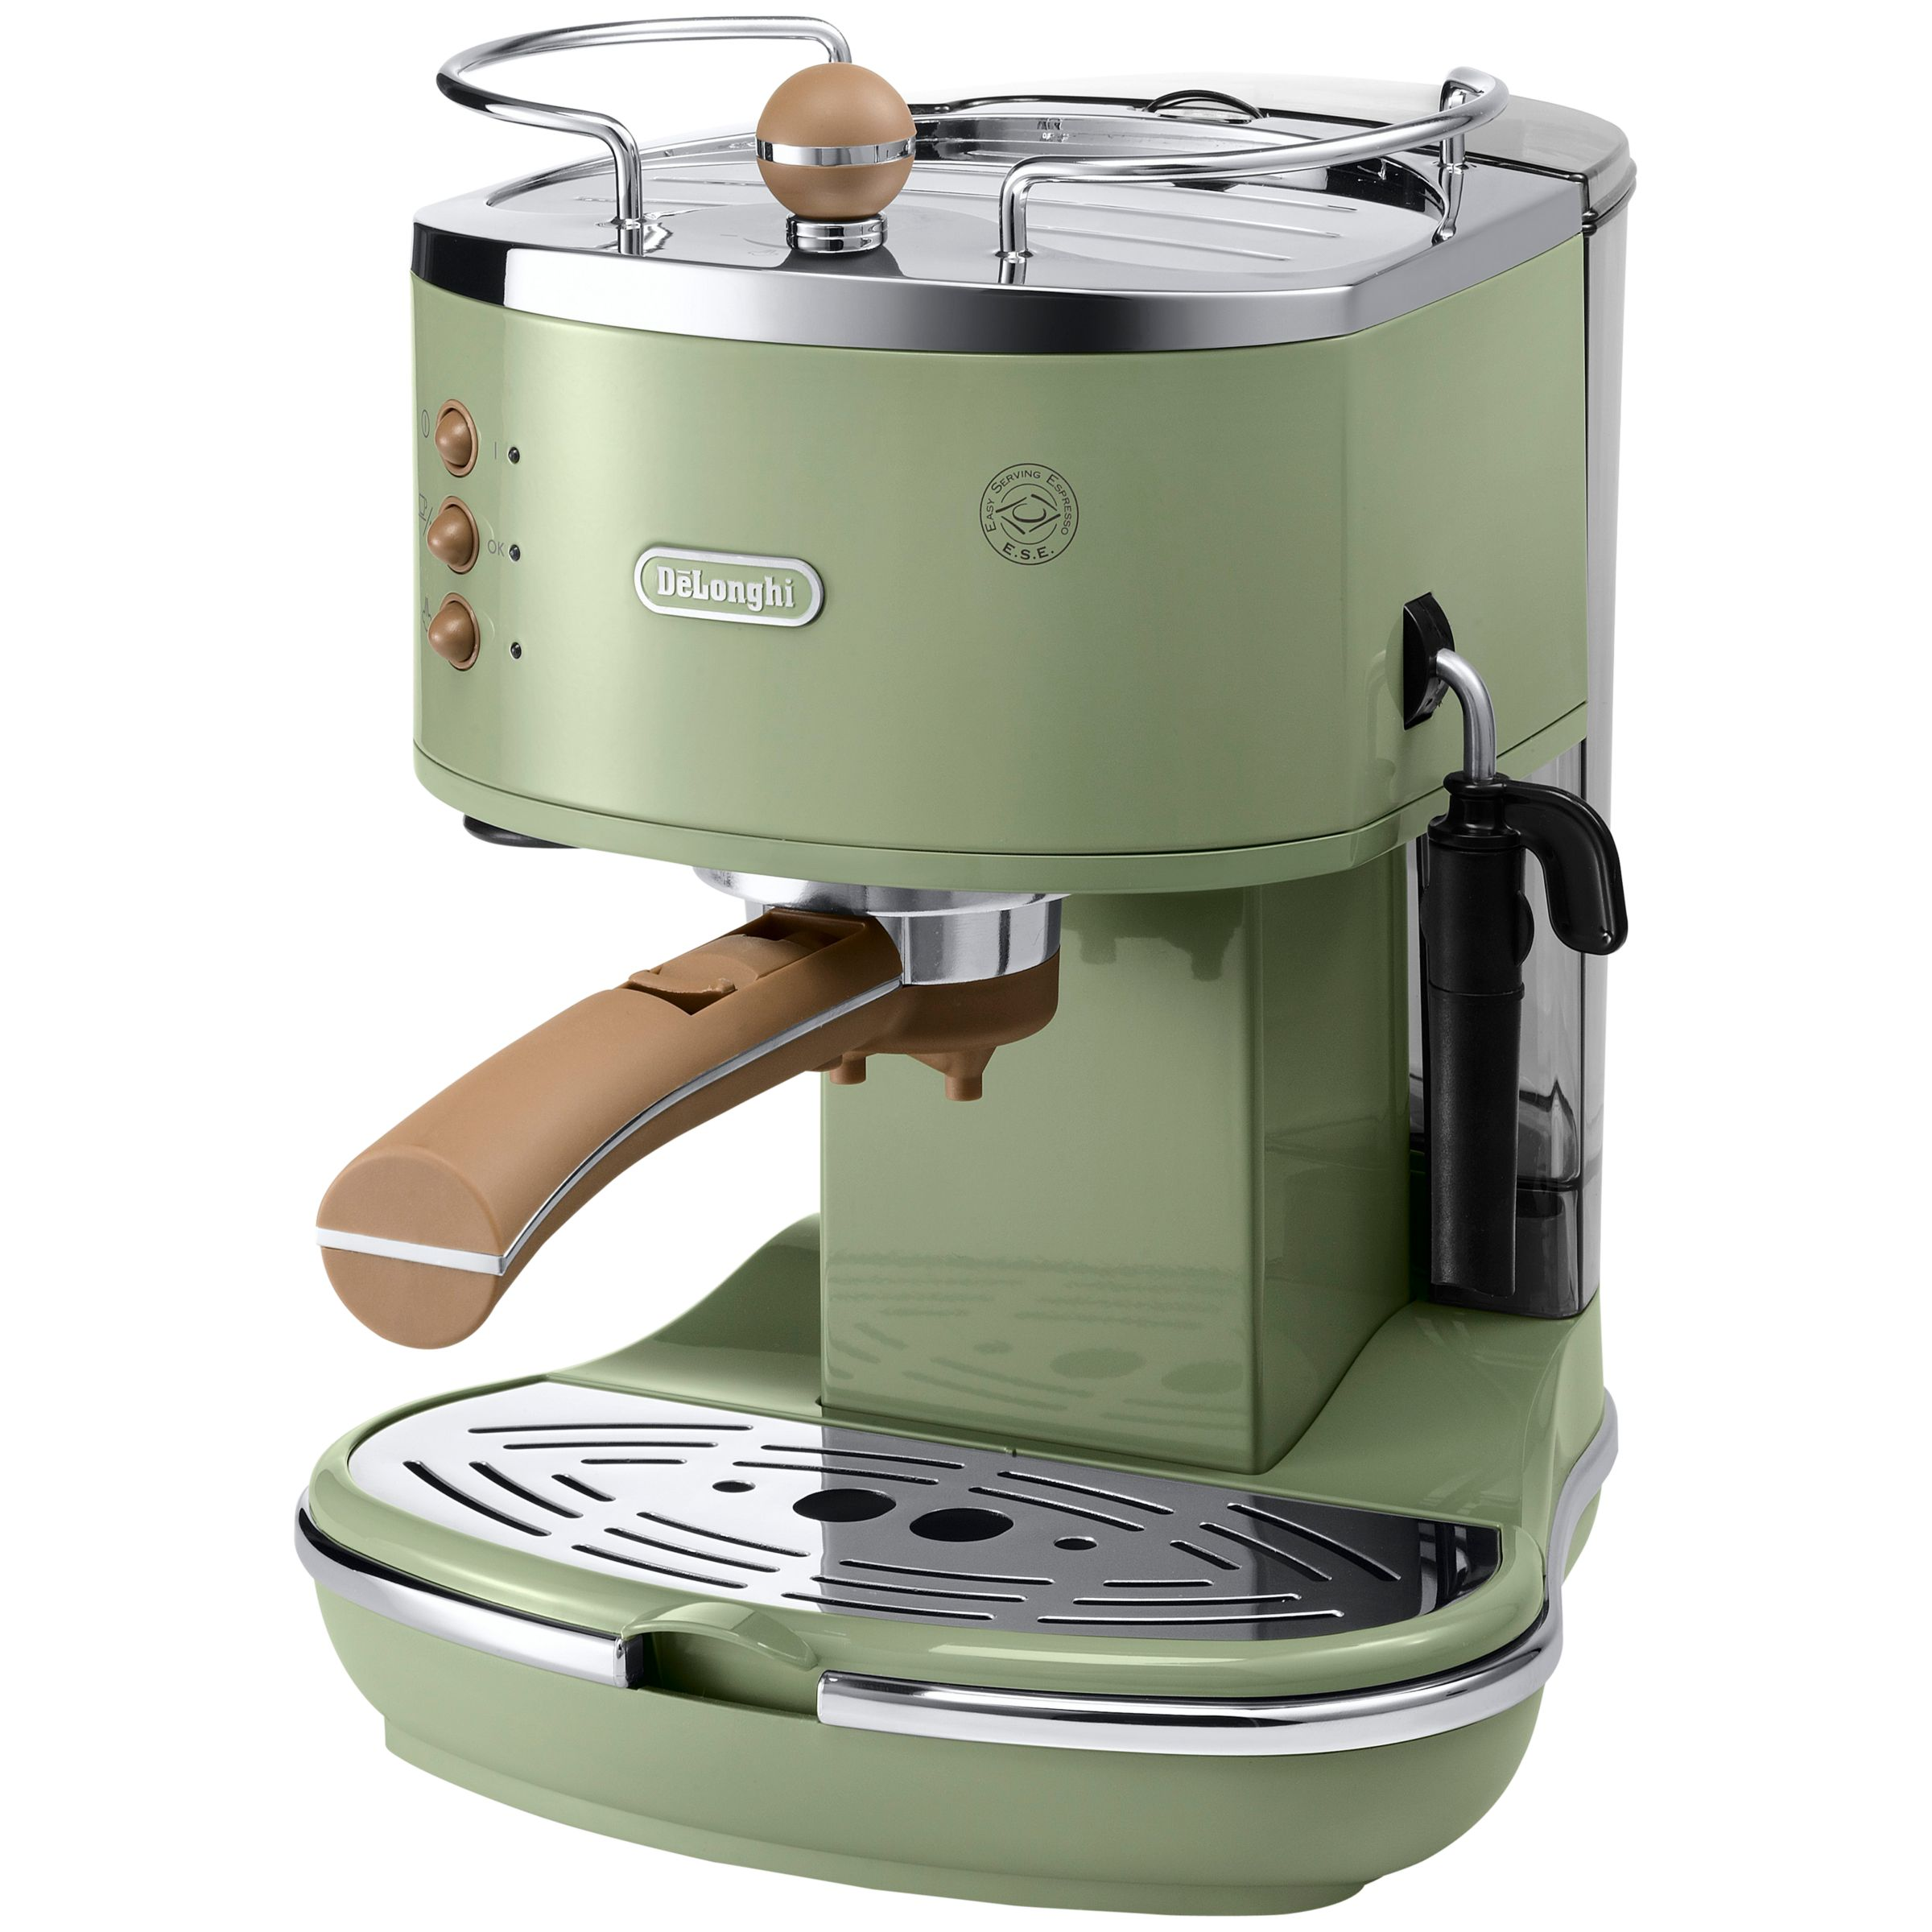 Italian Coffee Maker John Lewis : Buy DeLonghi ECOV310 Vintage Icona Espresso Coffee Machine John Lewis